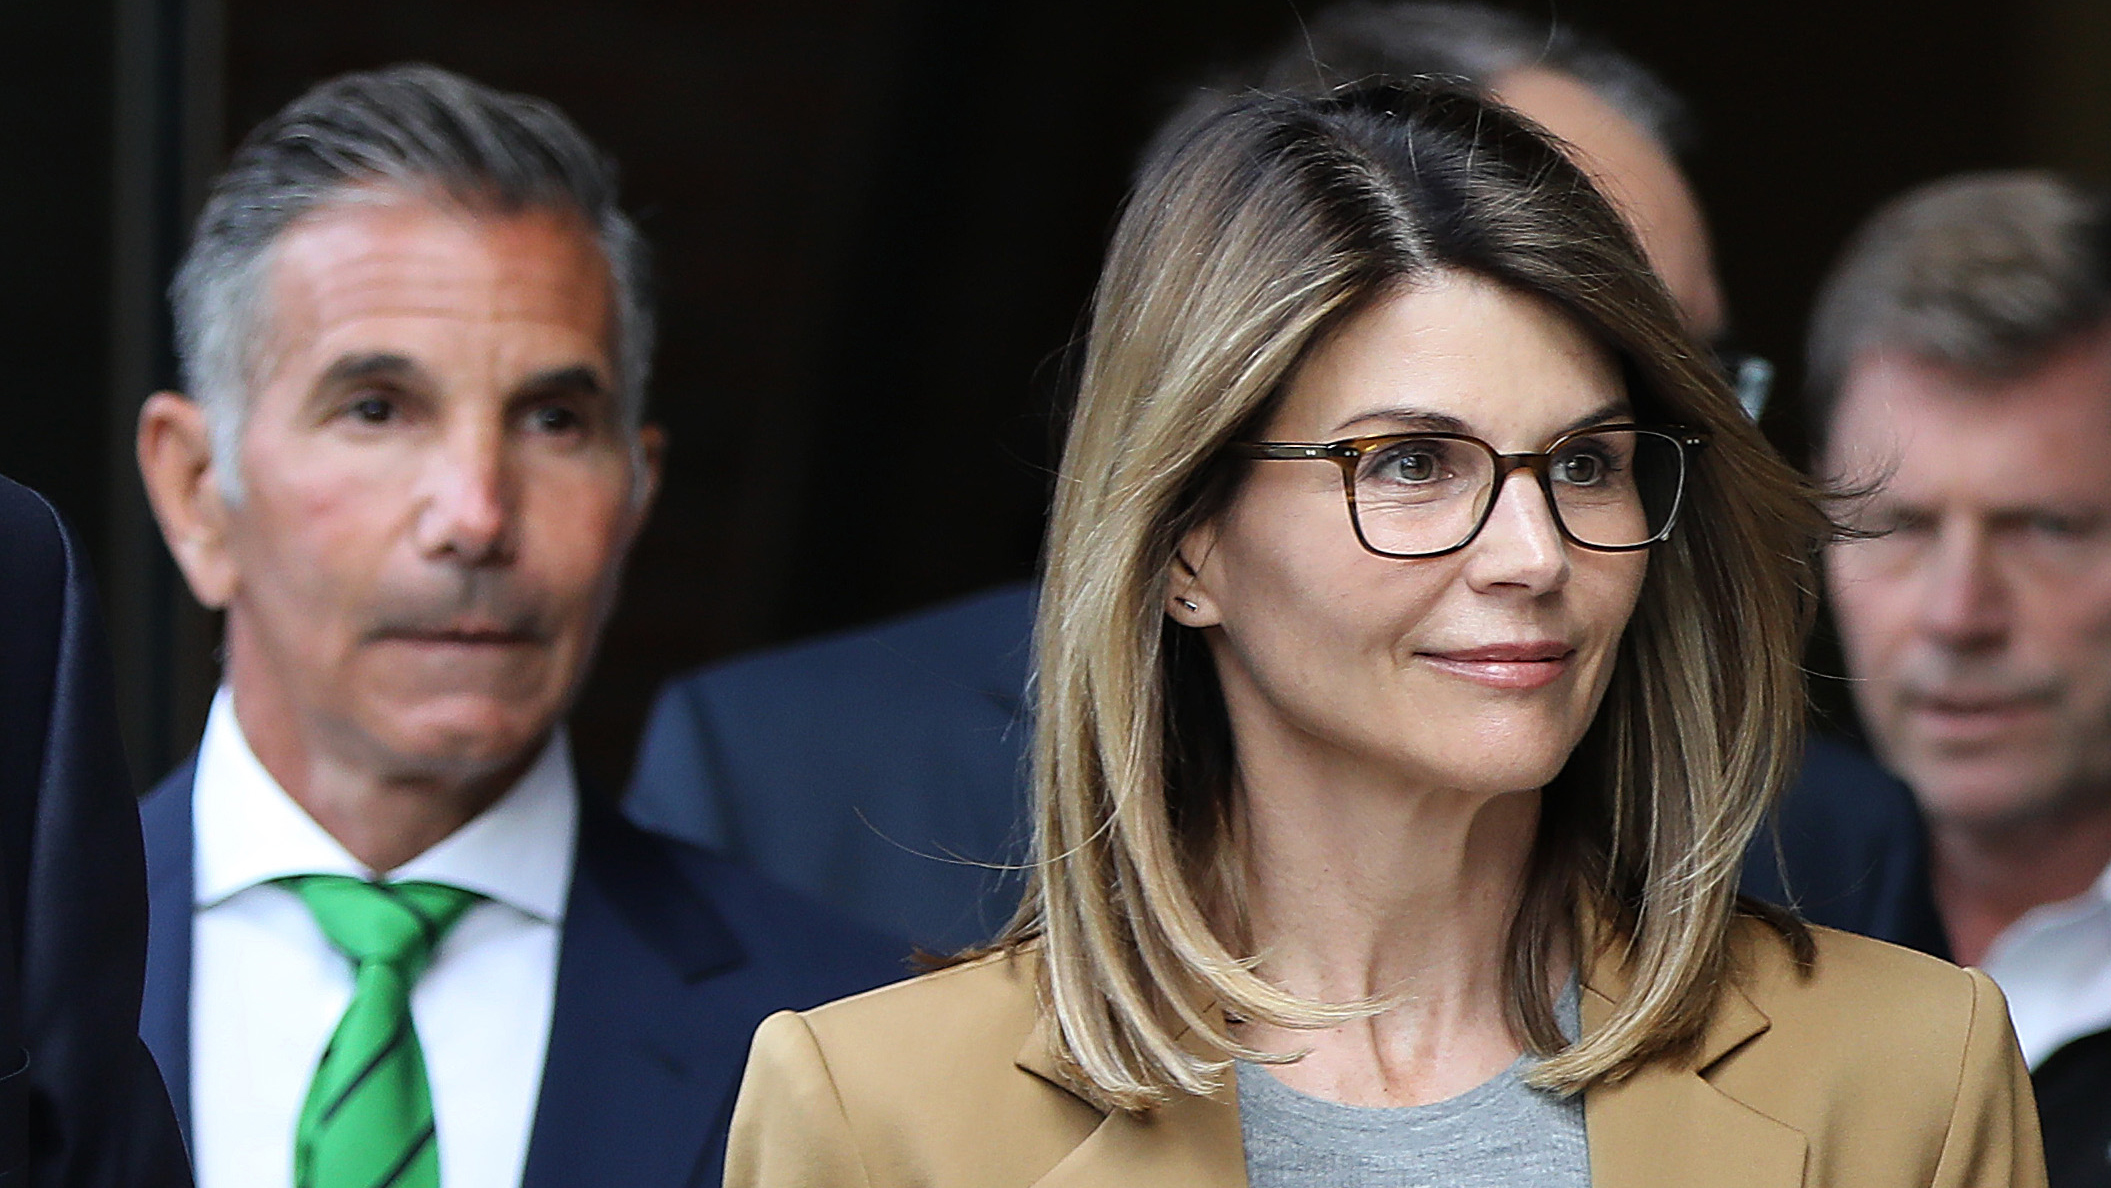 Lori Loughlin 'mentally preparing' for time in prison, wants it to be 'a distant memory by 2021': report